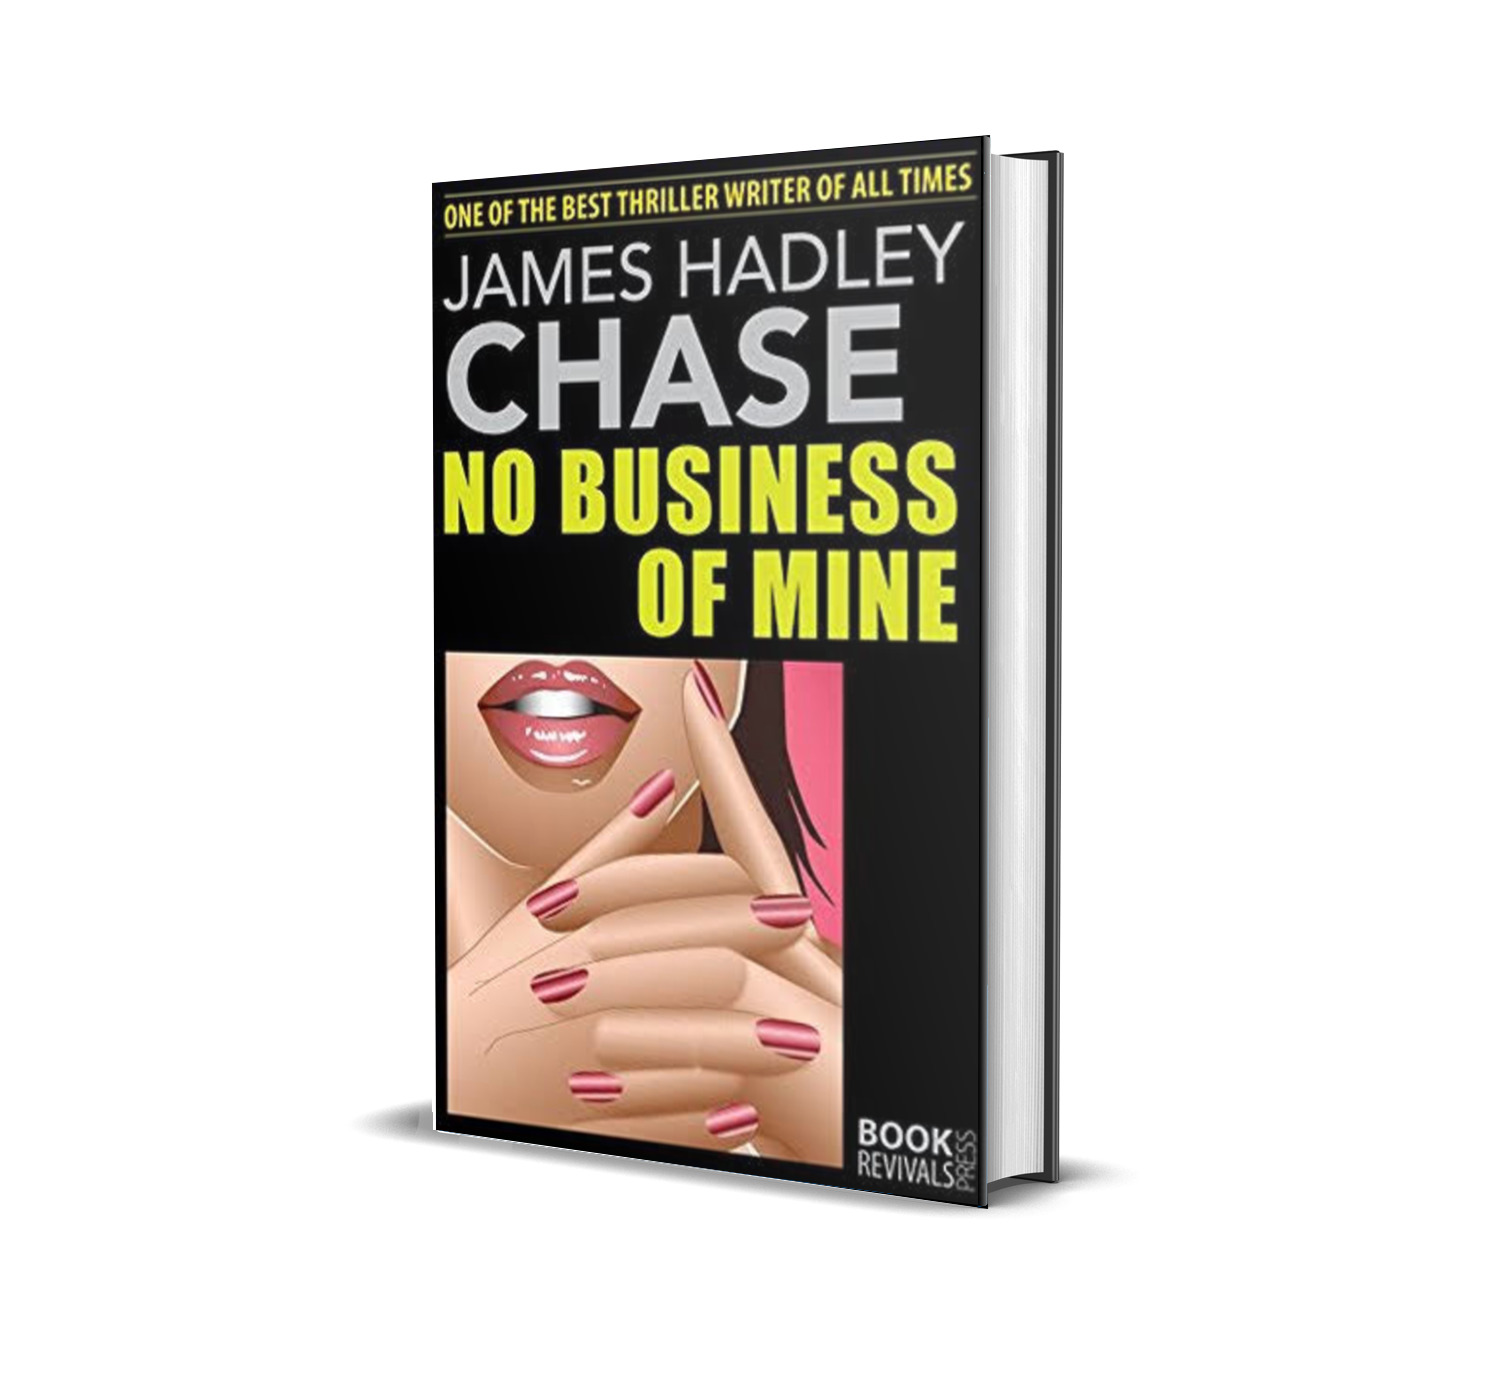 NO BUSINESS OF MINE JAMES HADLEY CHASE